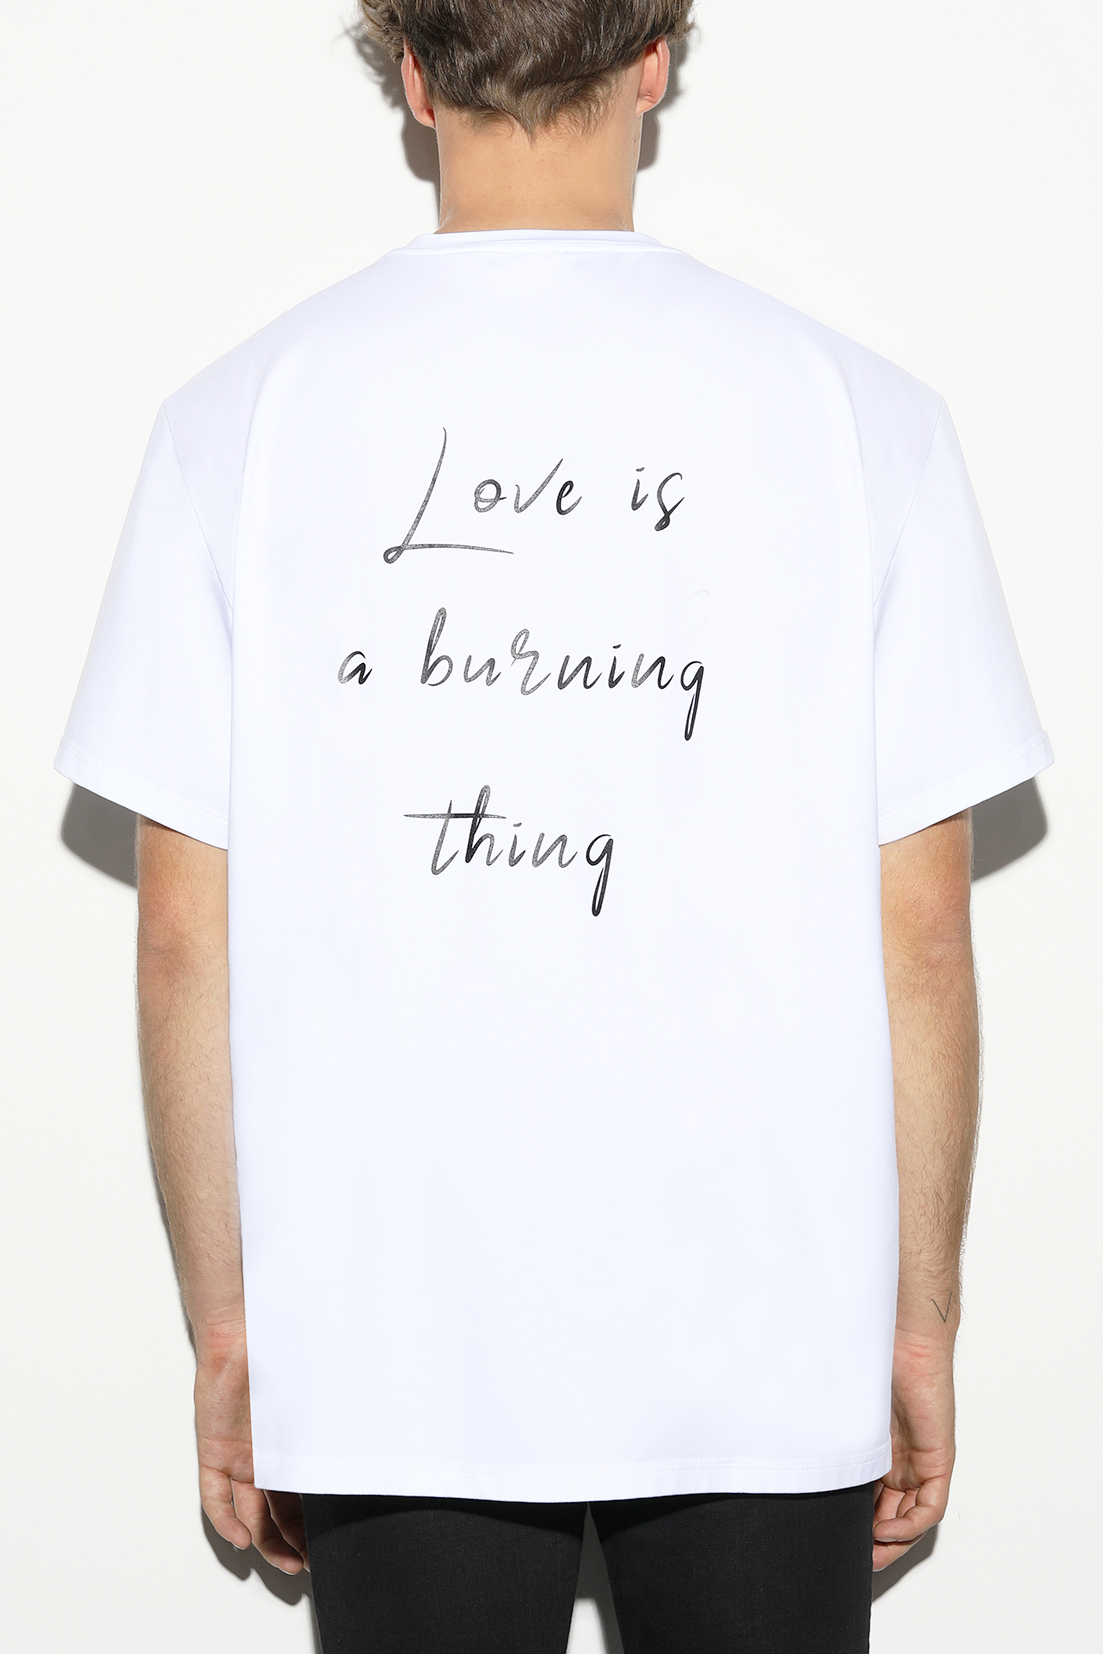 T-shirt for women and men by designer Stefan Eckert, made of organic cotton, sustainably produced in Germany, design The kiss and Love is a burning thing-2